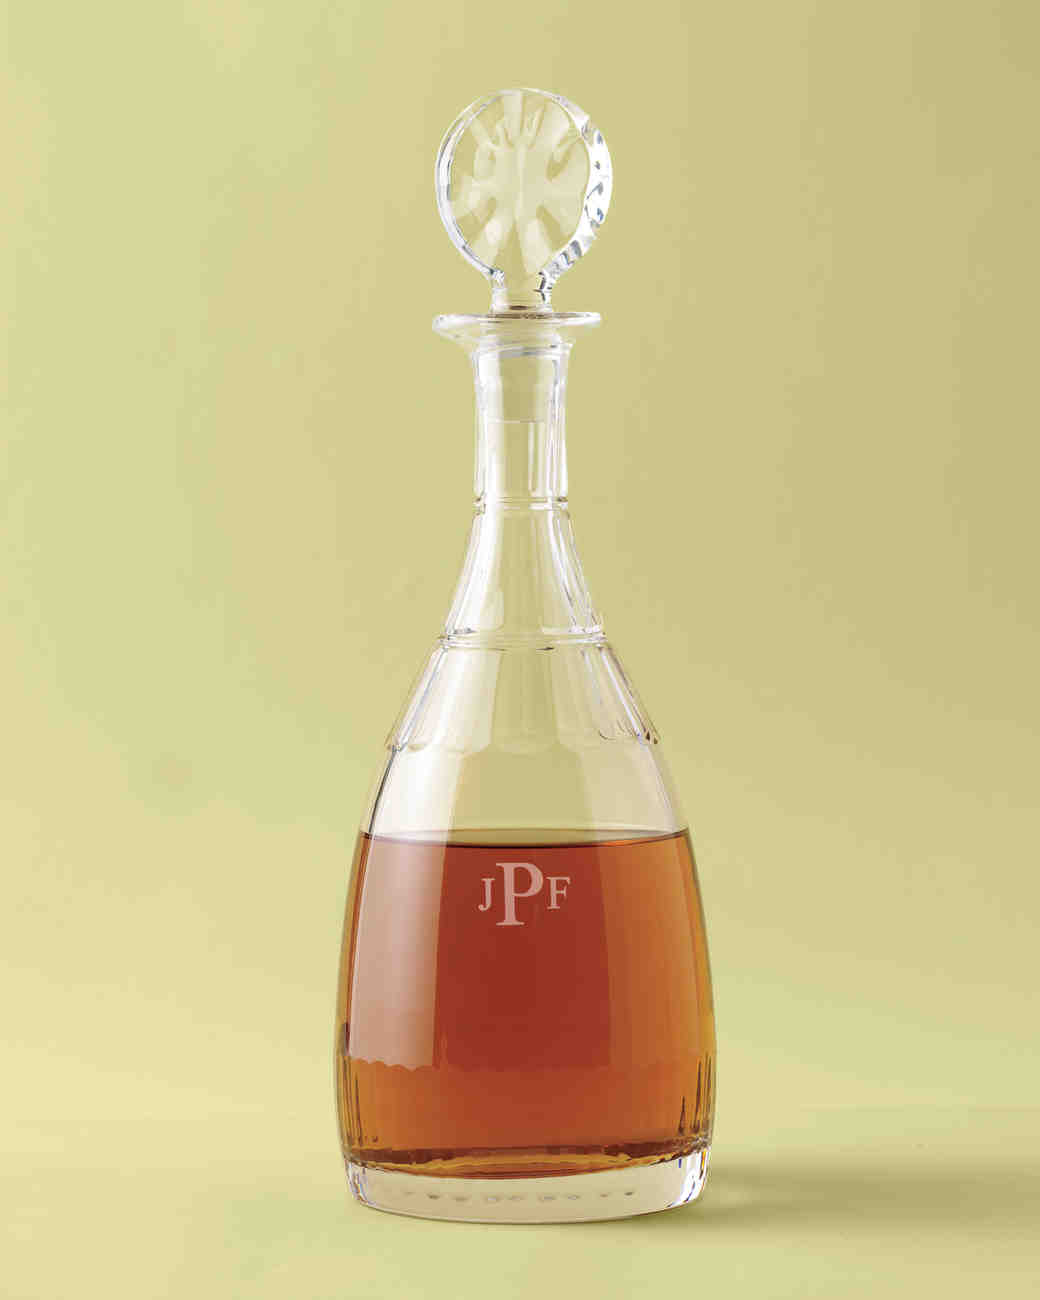 decanter-mwd108401.jpg